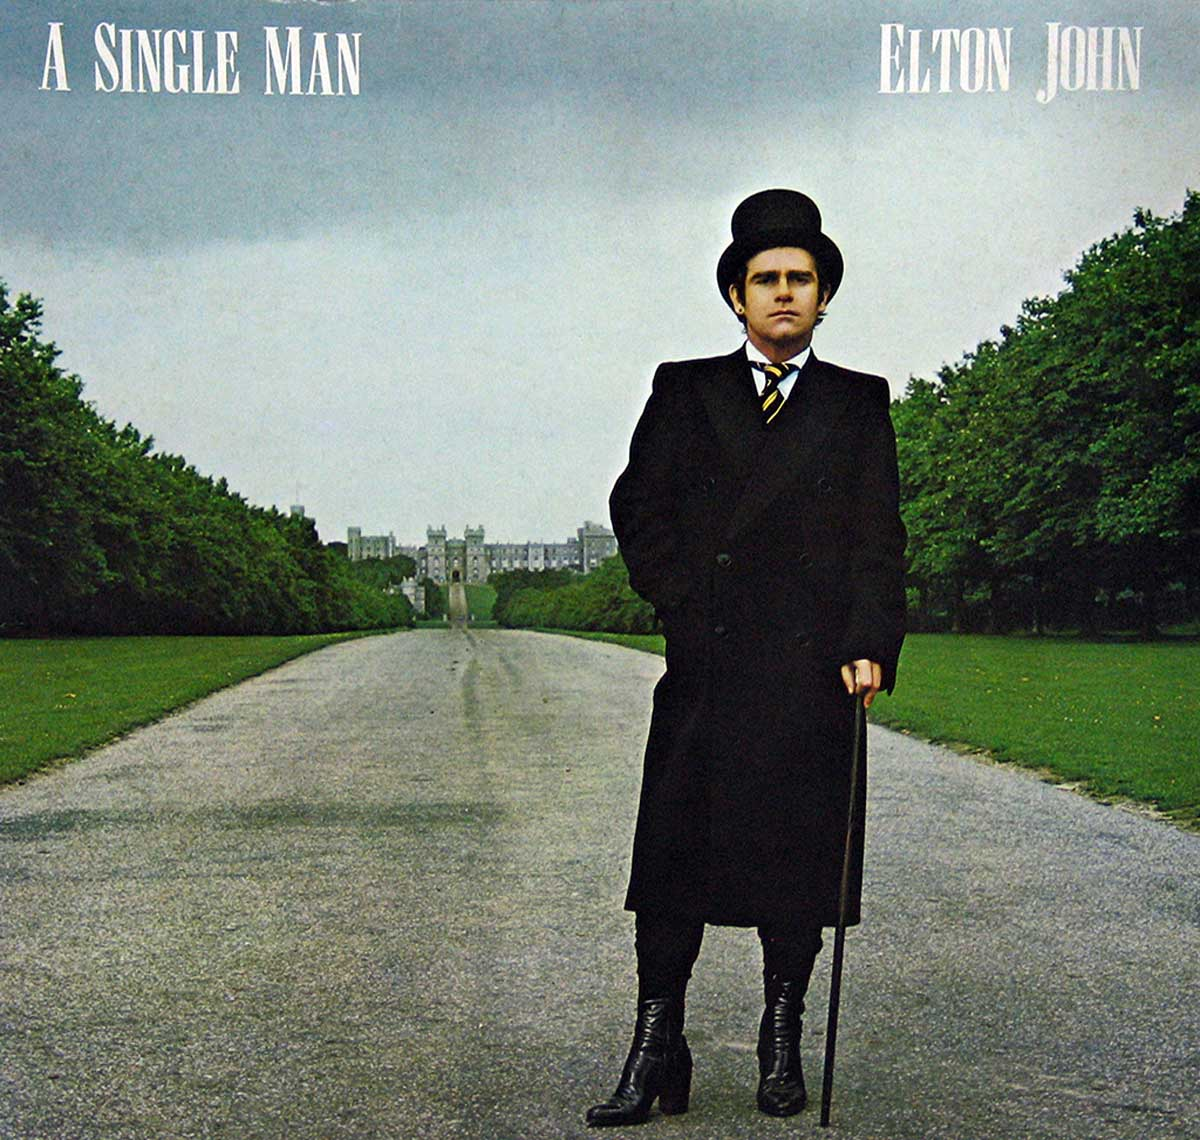 large photo of the album front cover of: ELTON JOHN - A SINGLE MAN